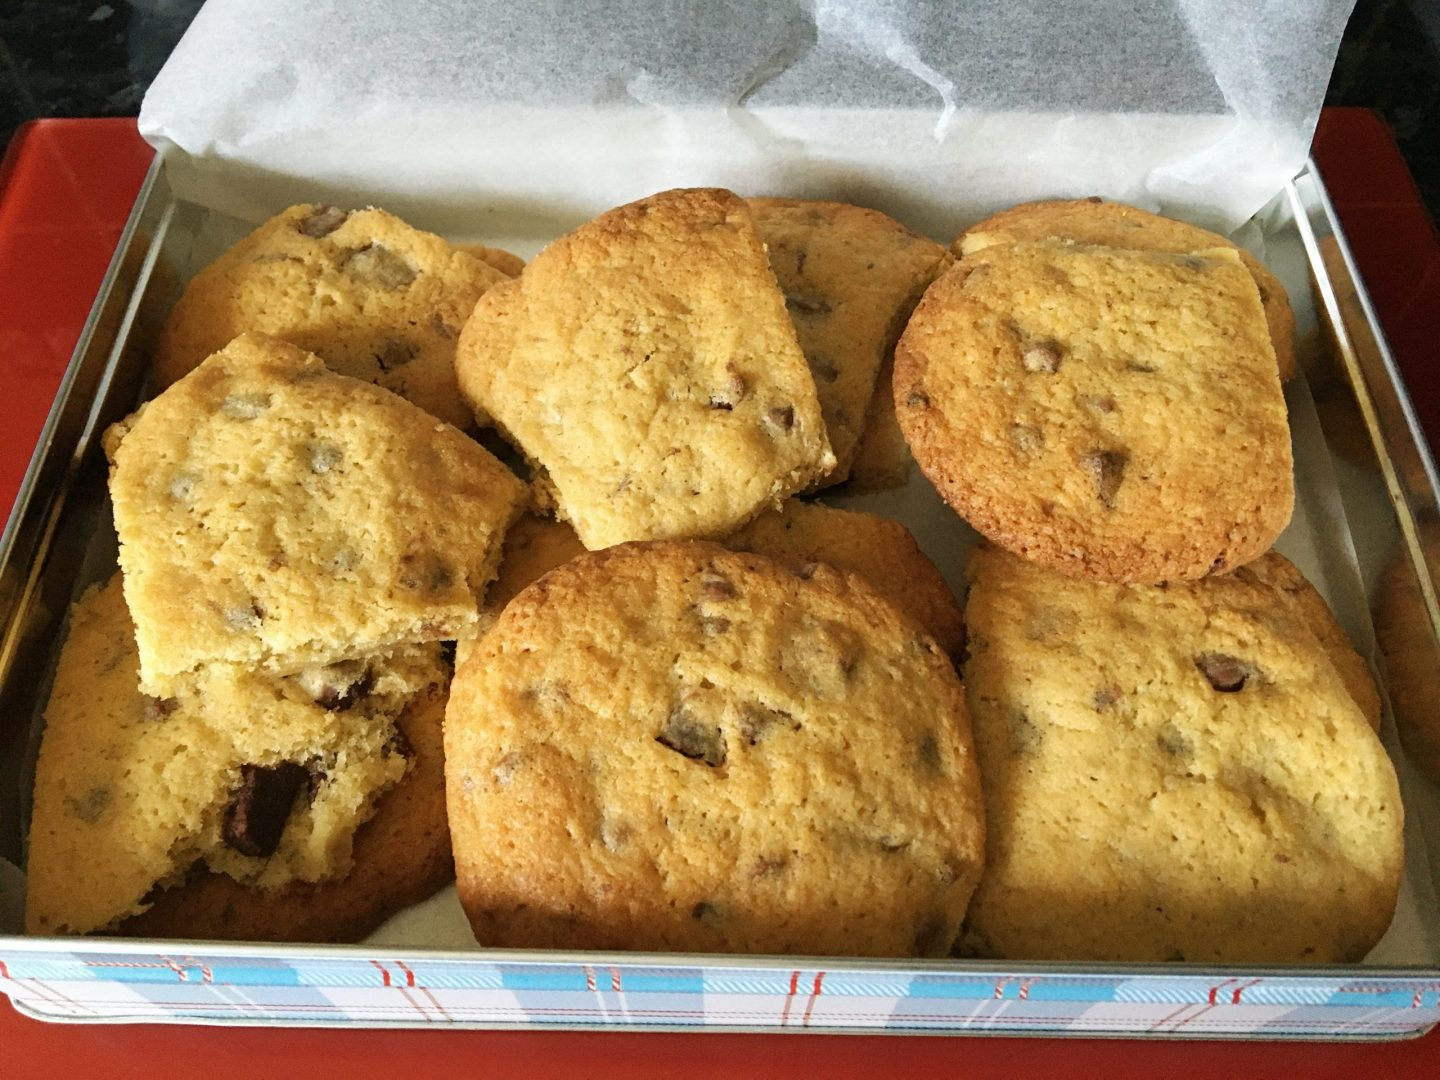 A photo of the cookies in a tin, ready to store for eating, though they didn't last long before they'd been eaten!